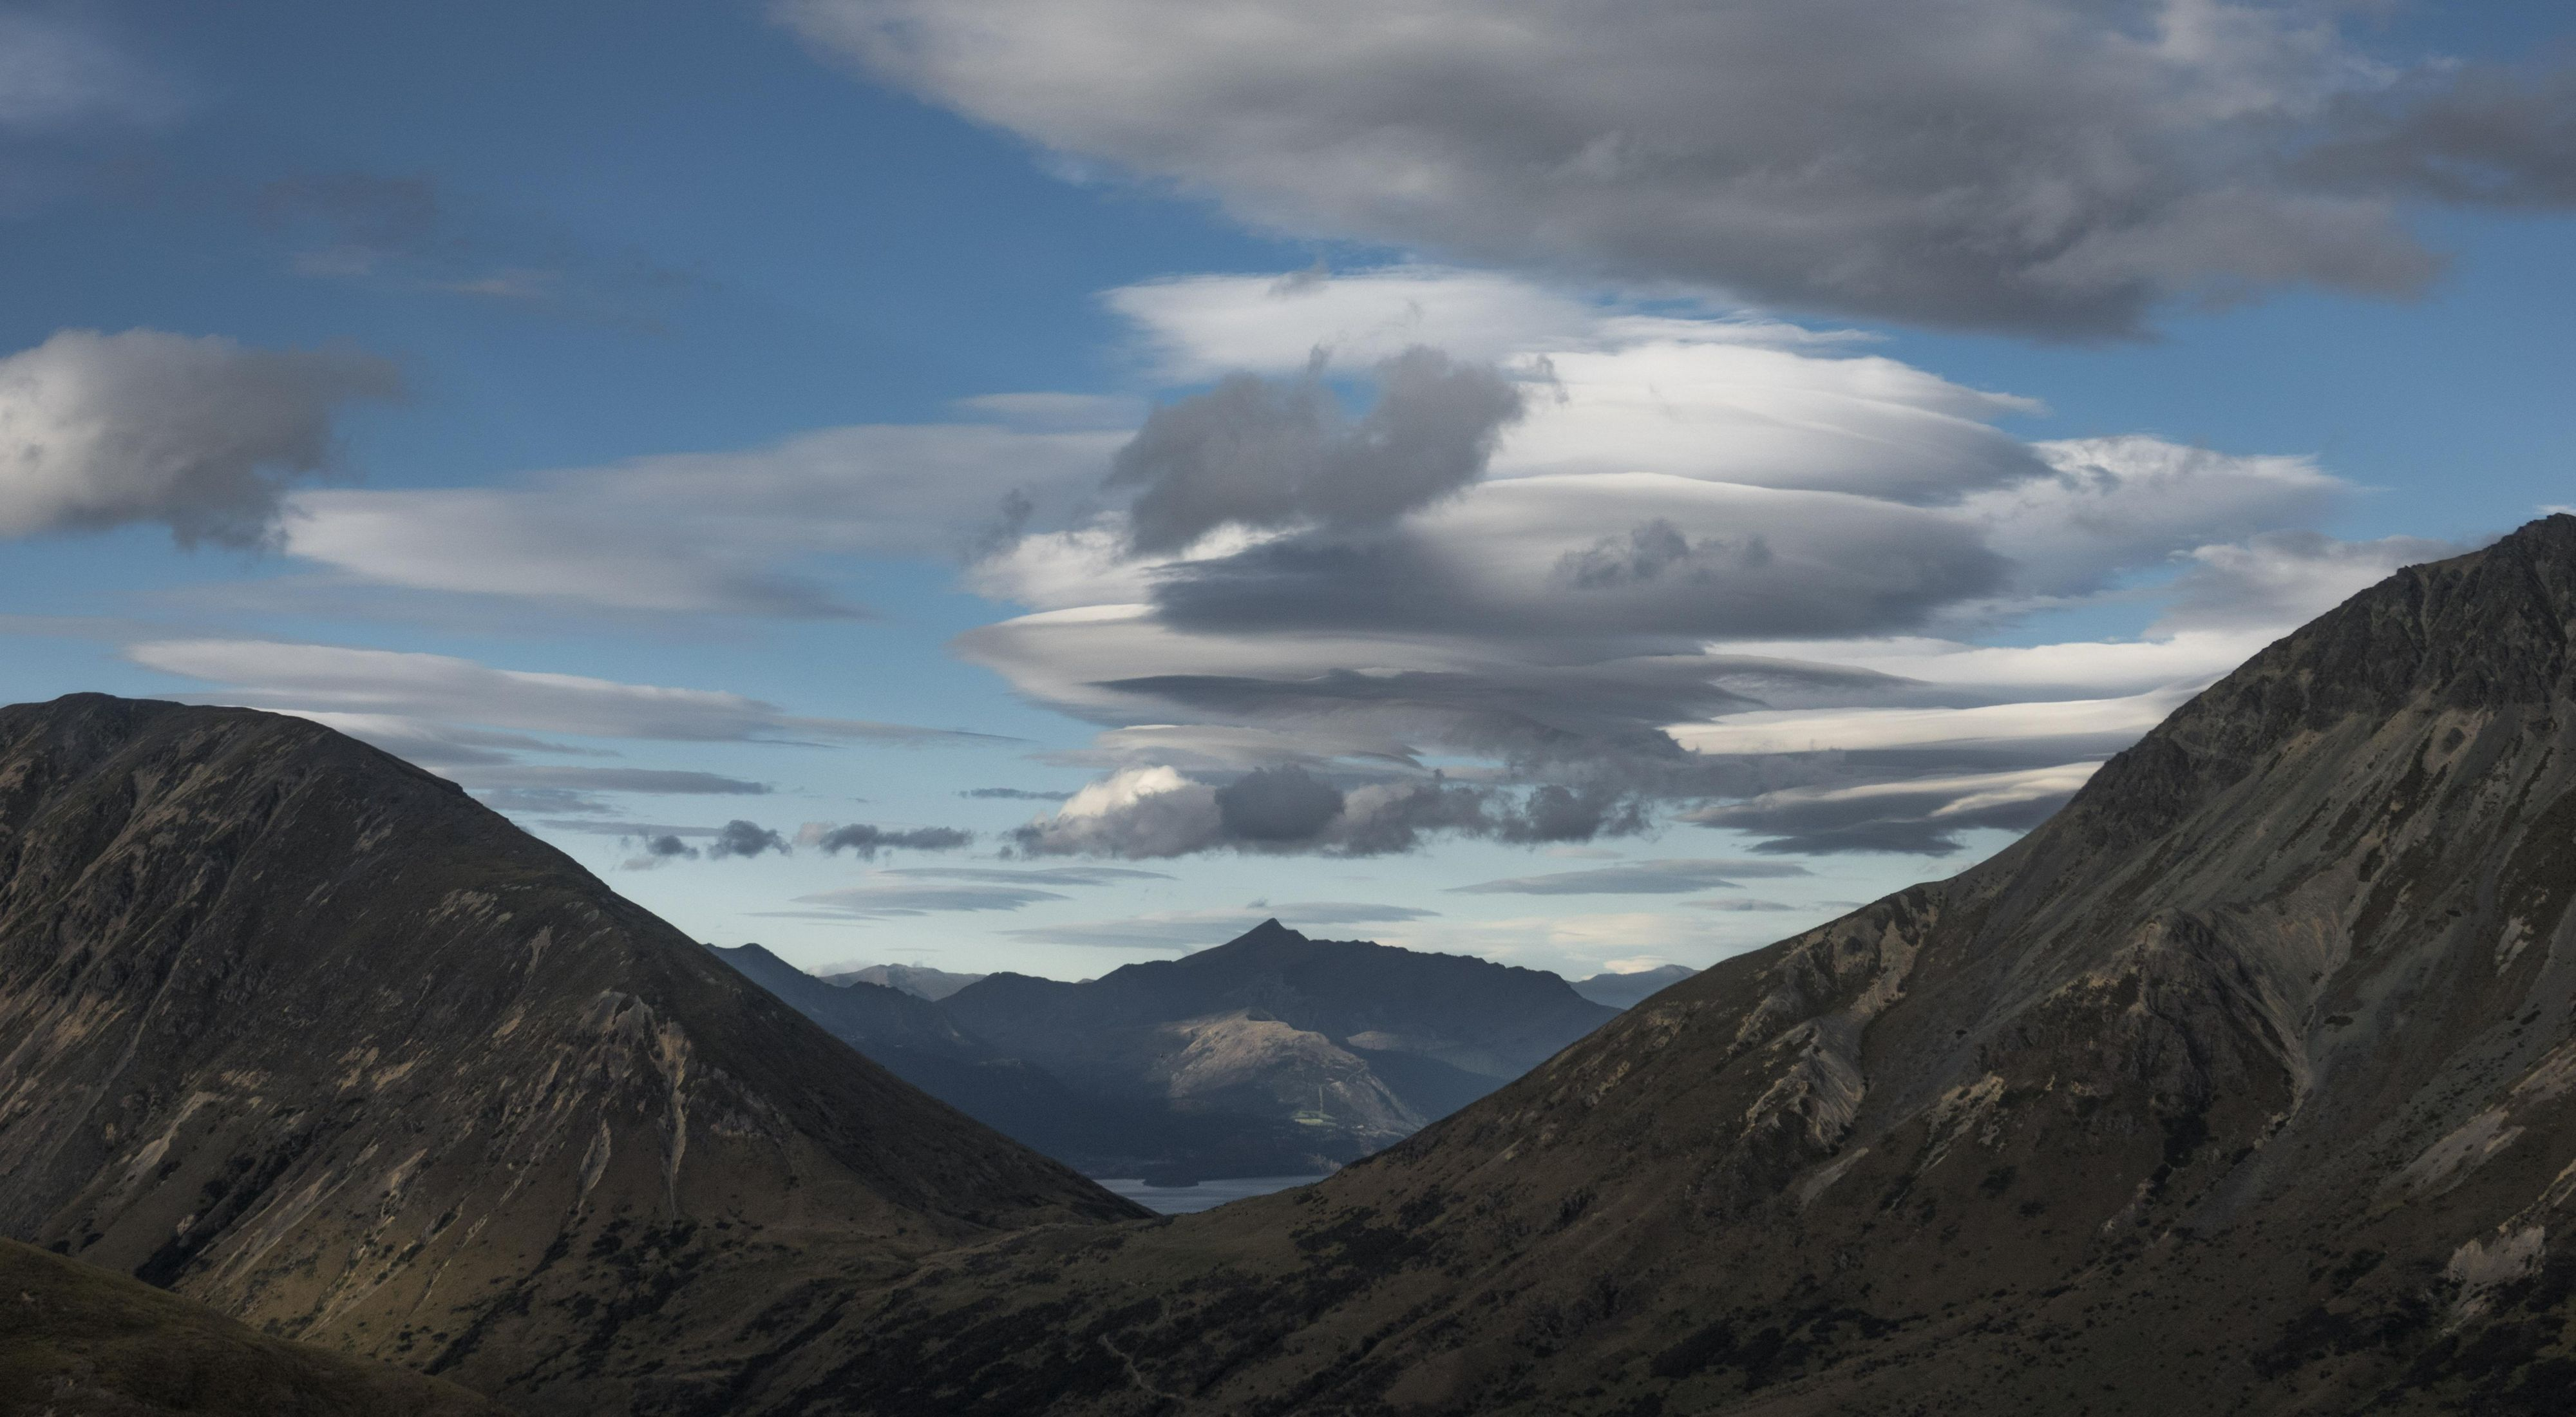 An aerial view of mountains and clouds in New Zealand's South Island.